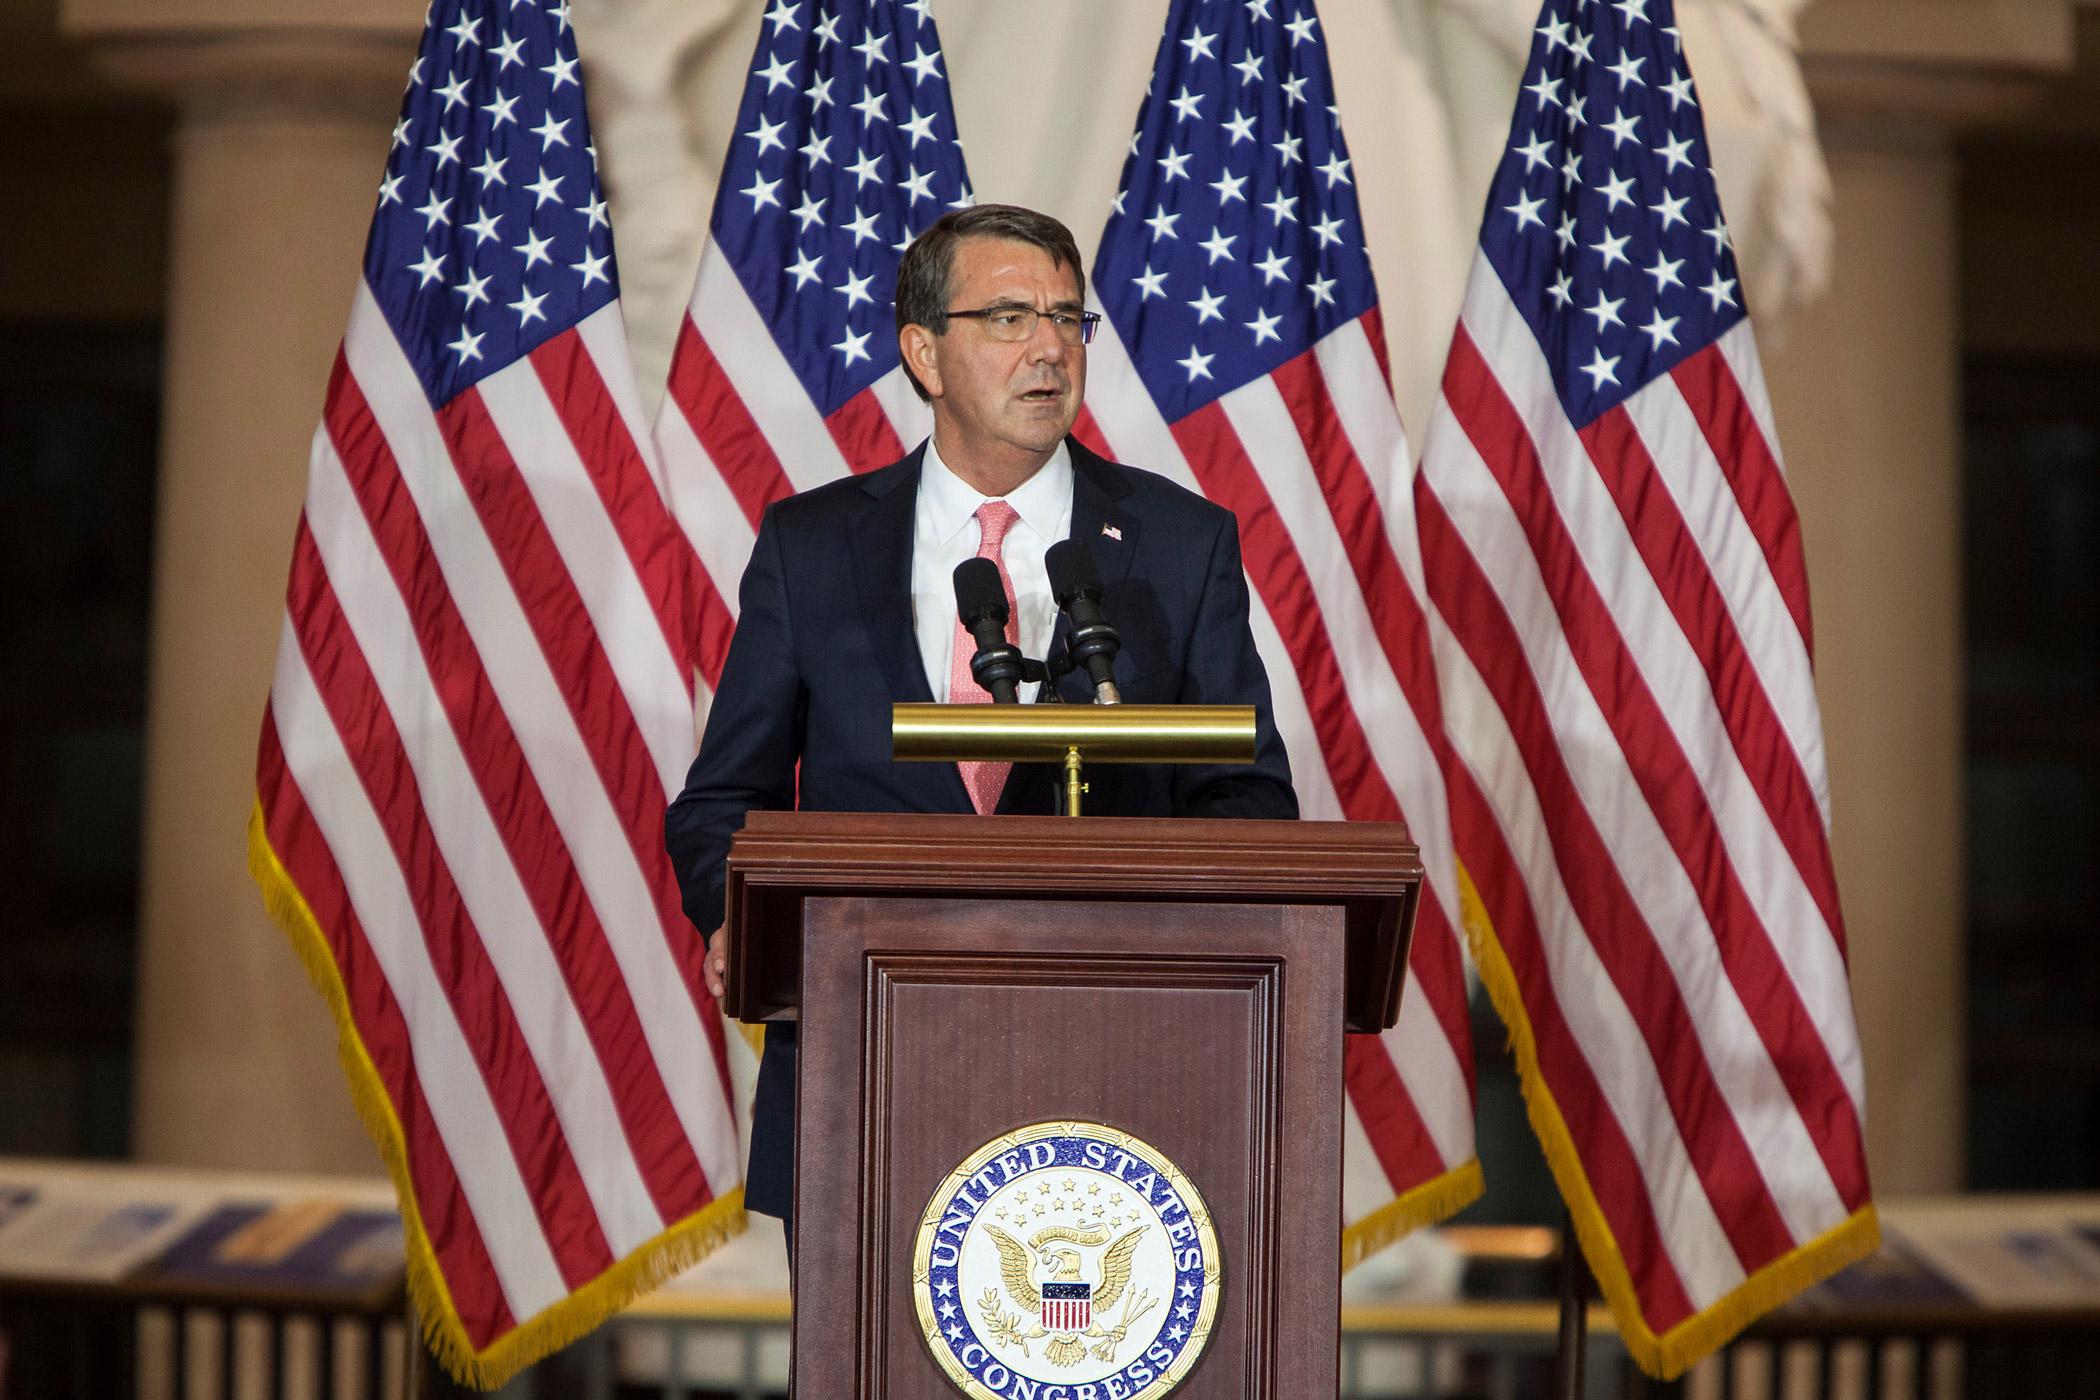 Secretary of Defense Ash Carter speaks to veterans during the Vietnam War Commemoration ceremony at the Capitol in Washington, DC on July 8, 2015.